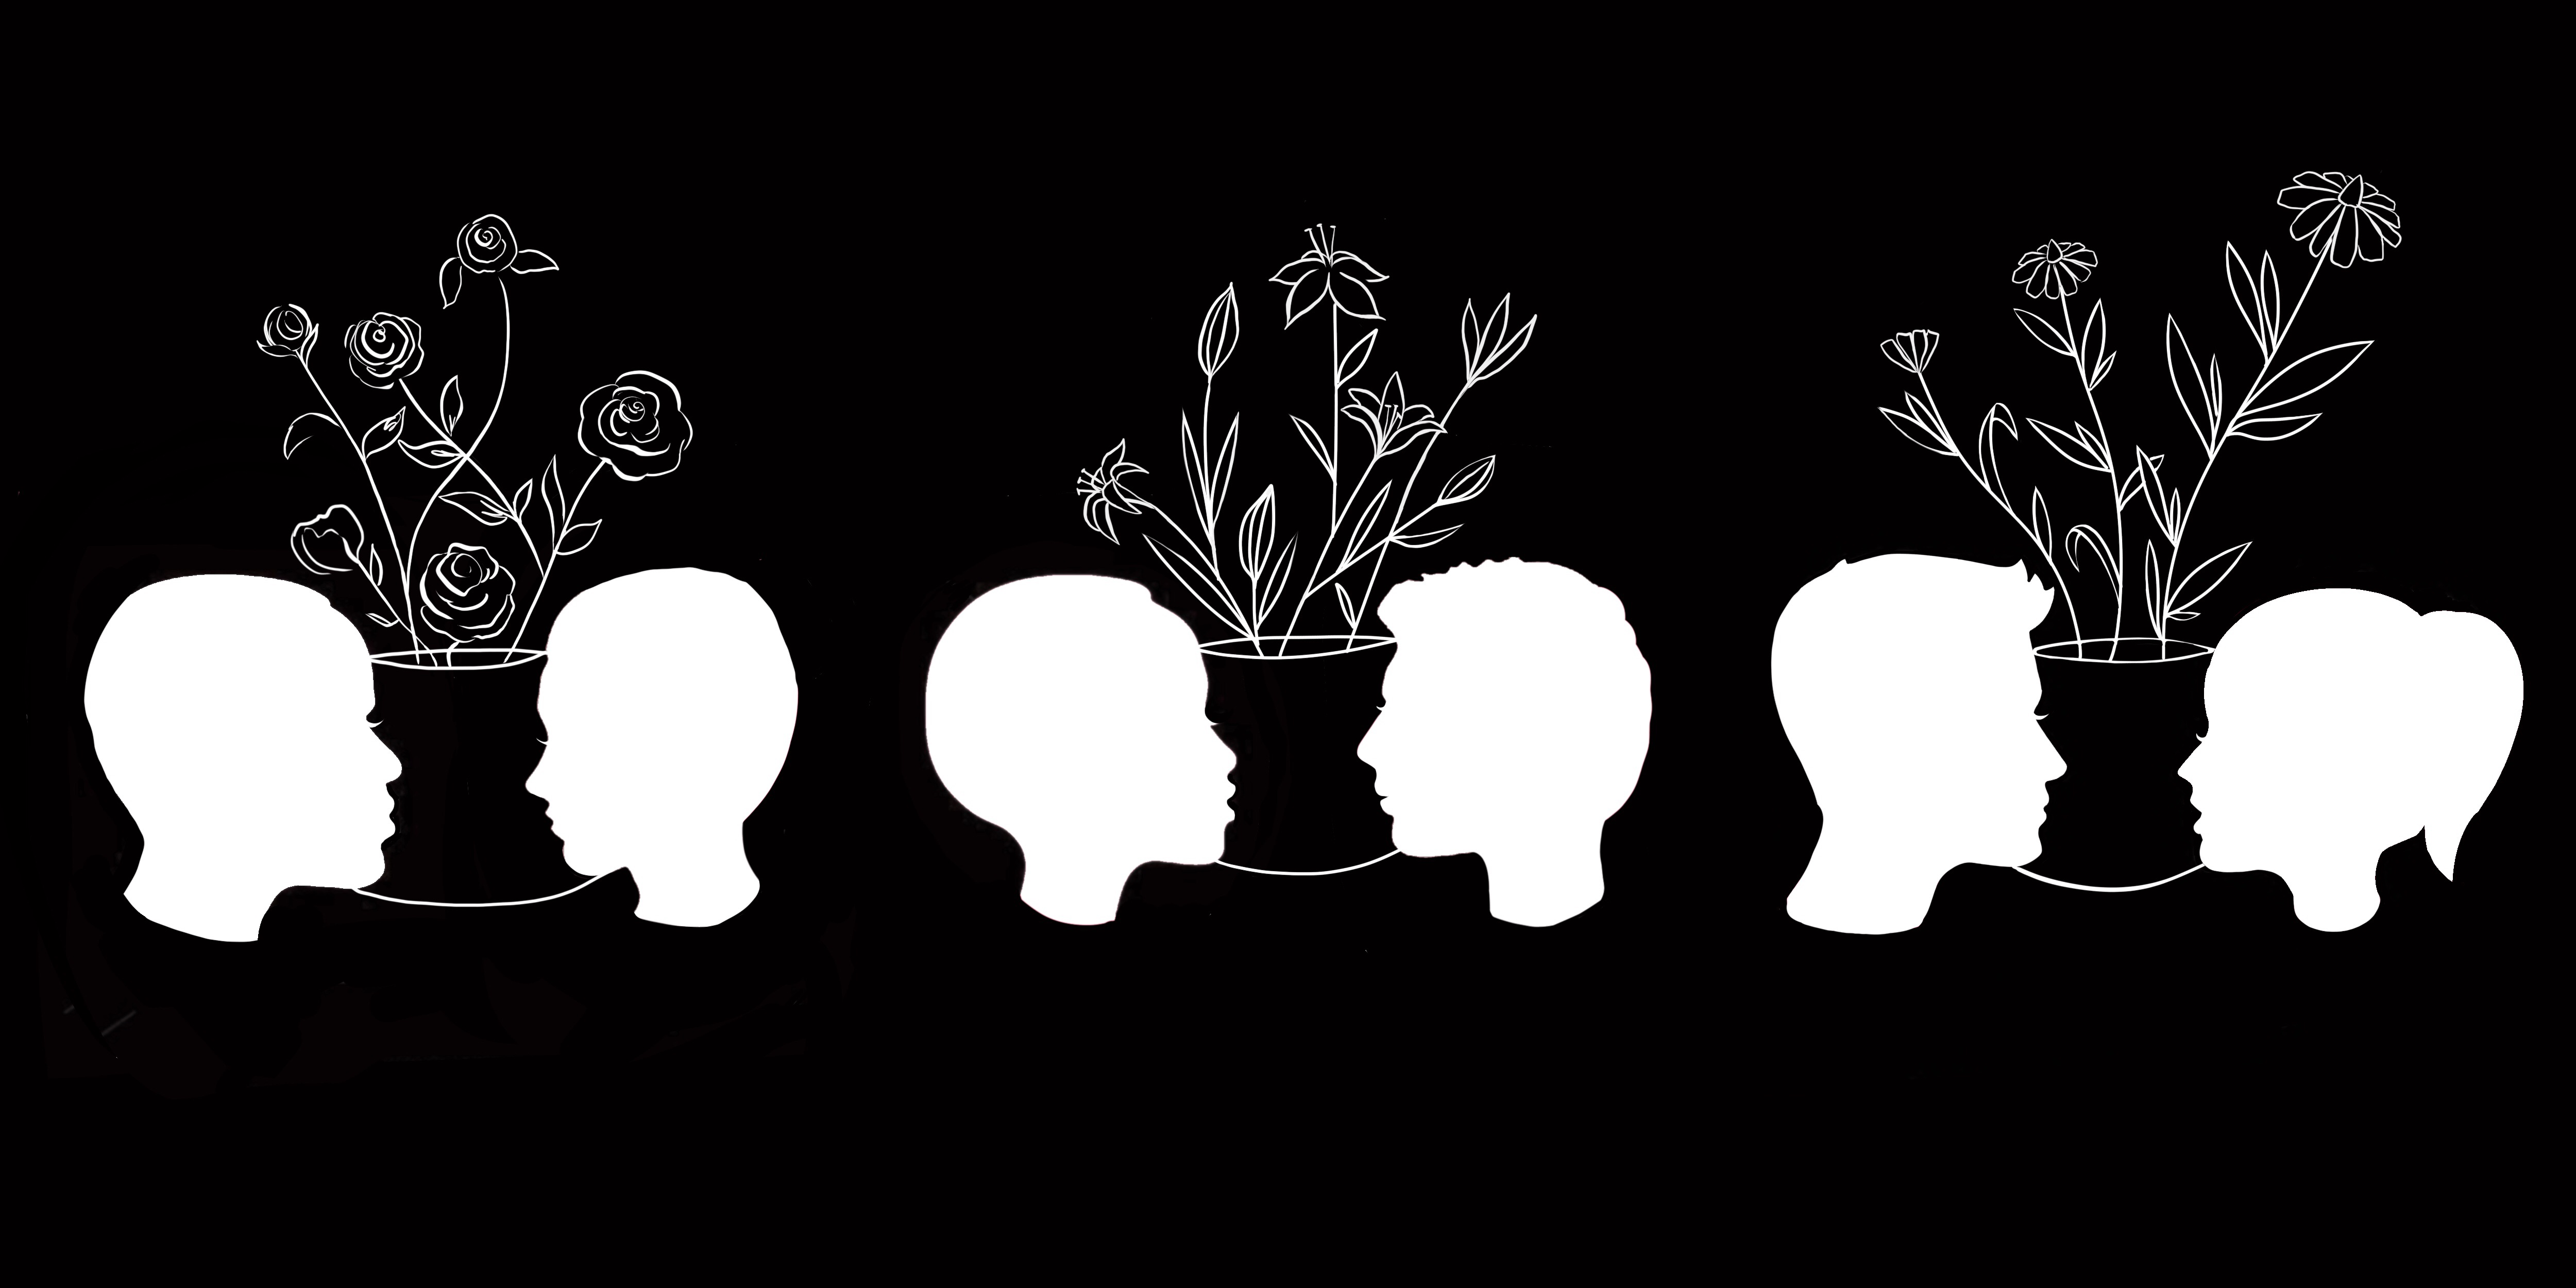 silhouettes of faces, with abstract flowering plants drawn between them, against black background